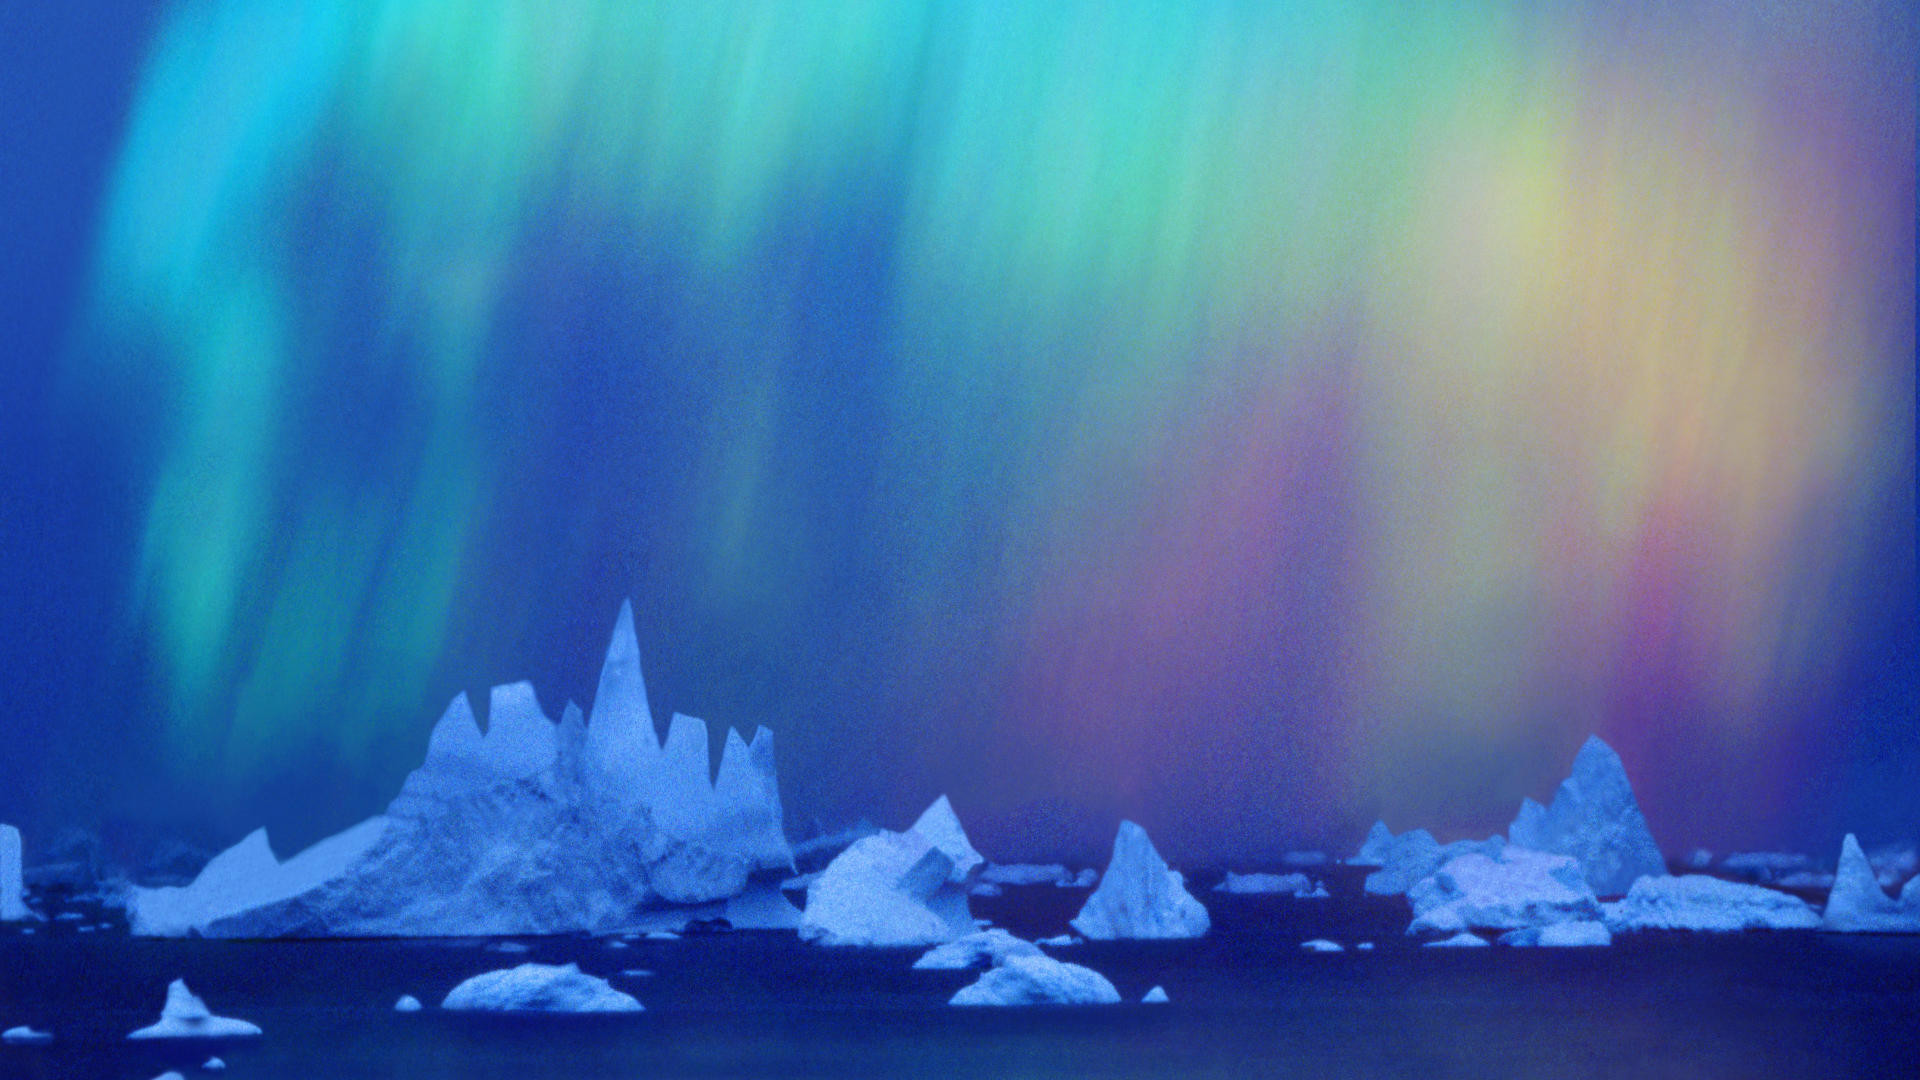 1920x1080 Download Background - Aurora Australis Over the Bellingshausen Sea,  Ellsworth Land Region, Antarctica - Free Cool Backgrounds and Wallpapers  for your ...